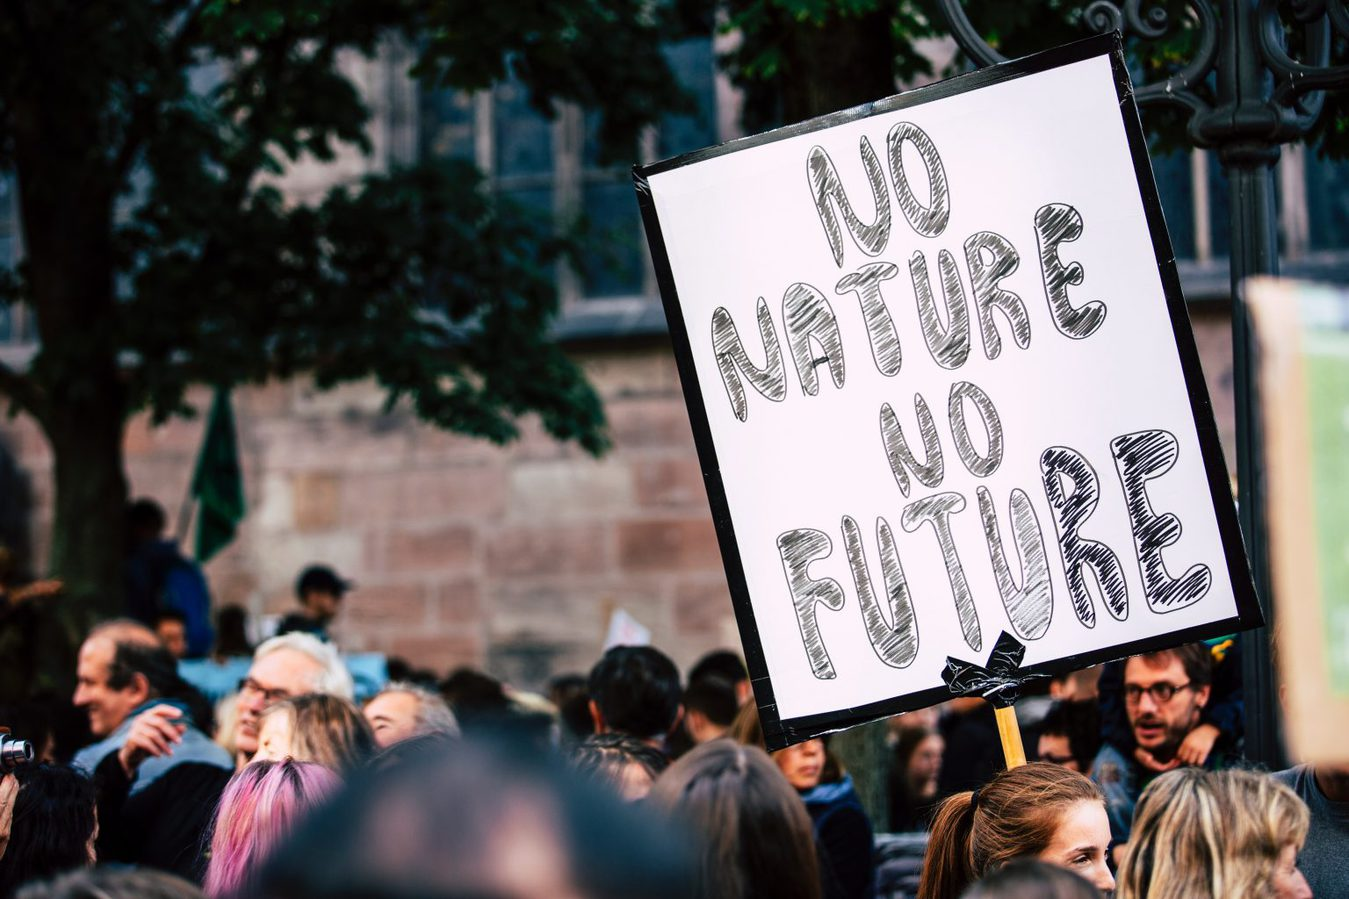 man holding up sign that says 'no nature no future'